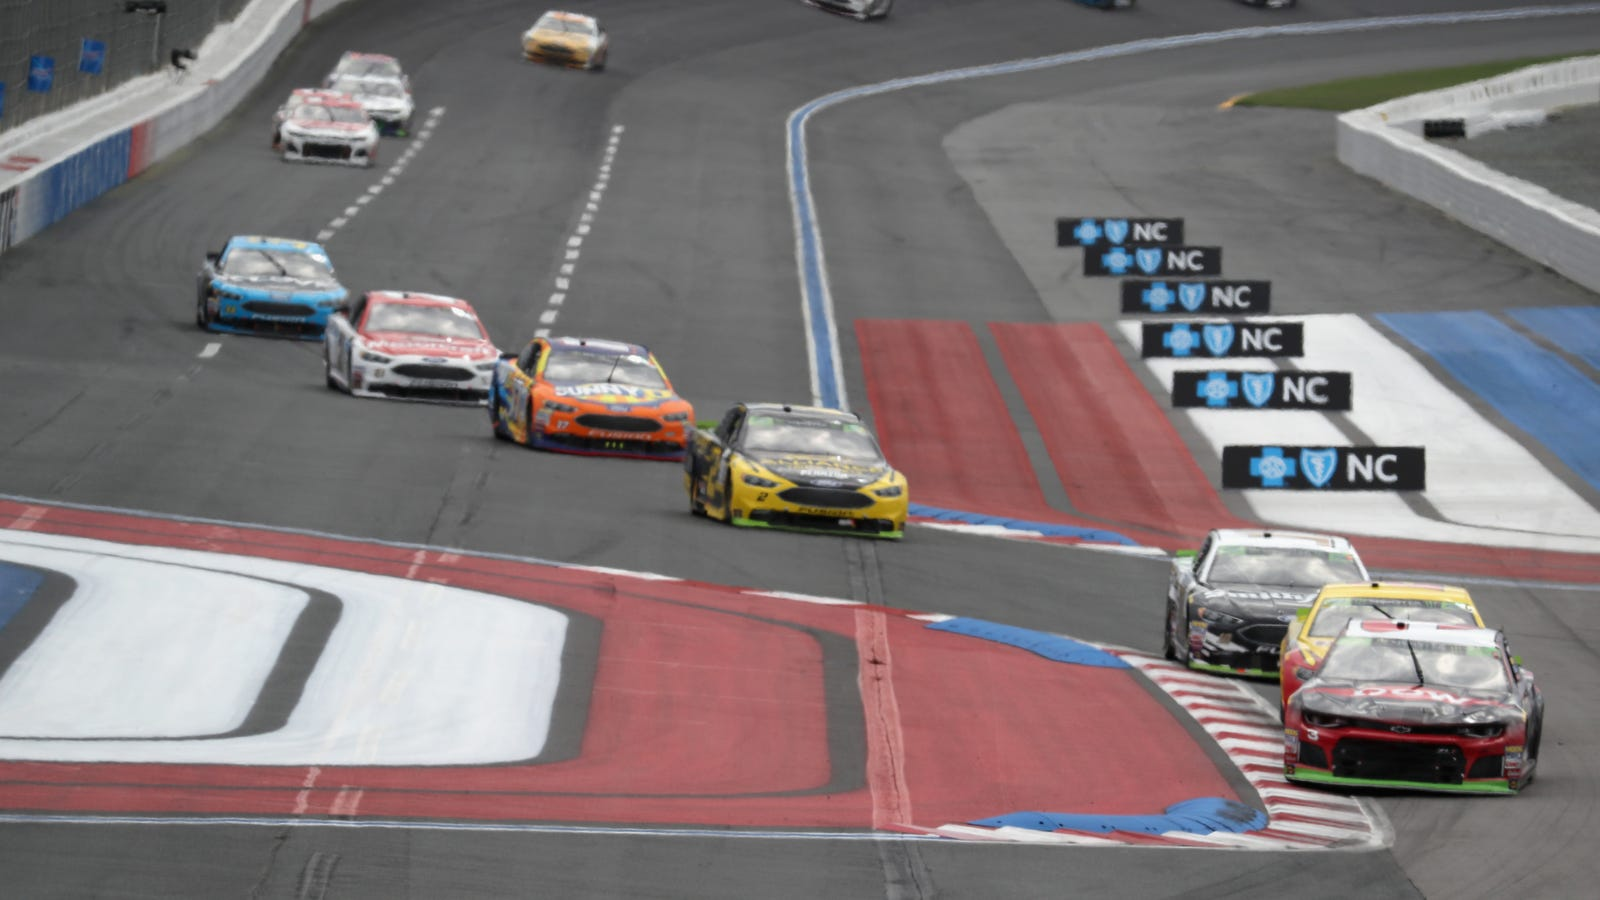 NASCAR Will Reduce Cars to Just 550 HP at Half of Its Cup Series Races Next Year